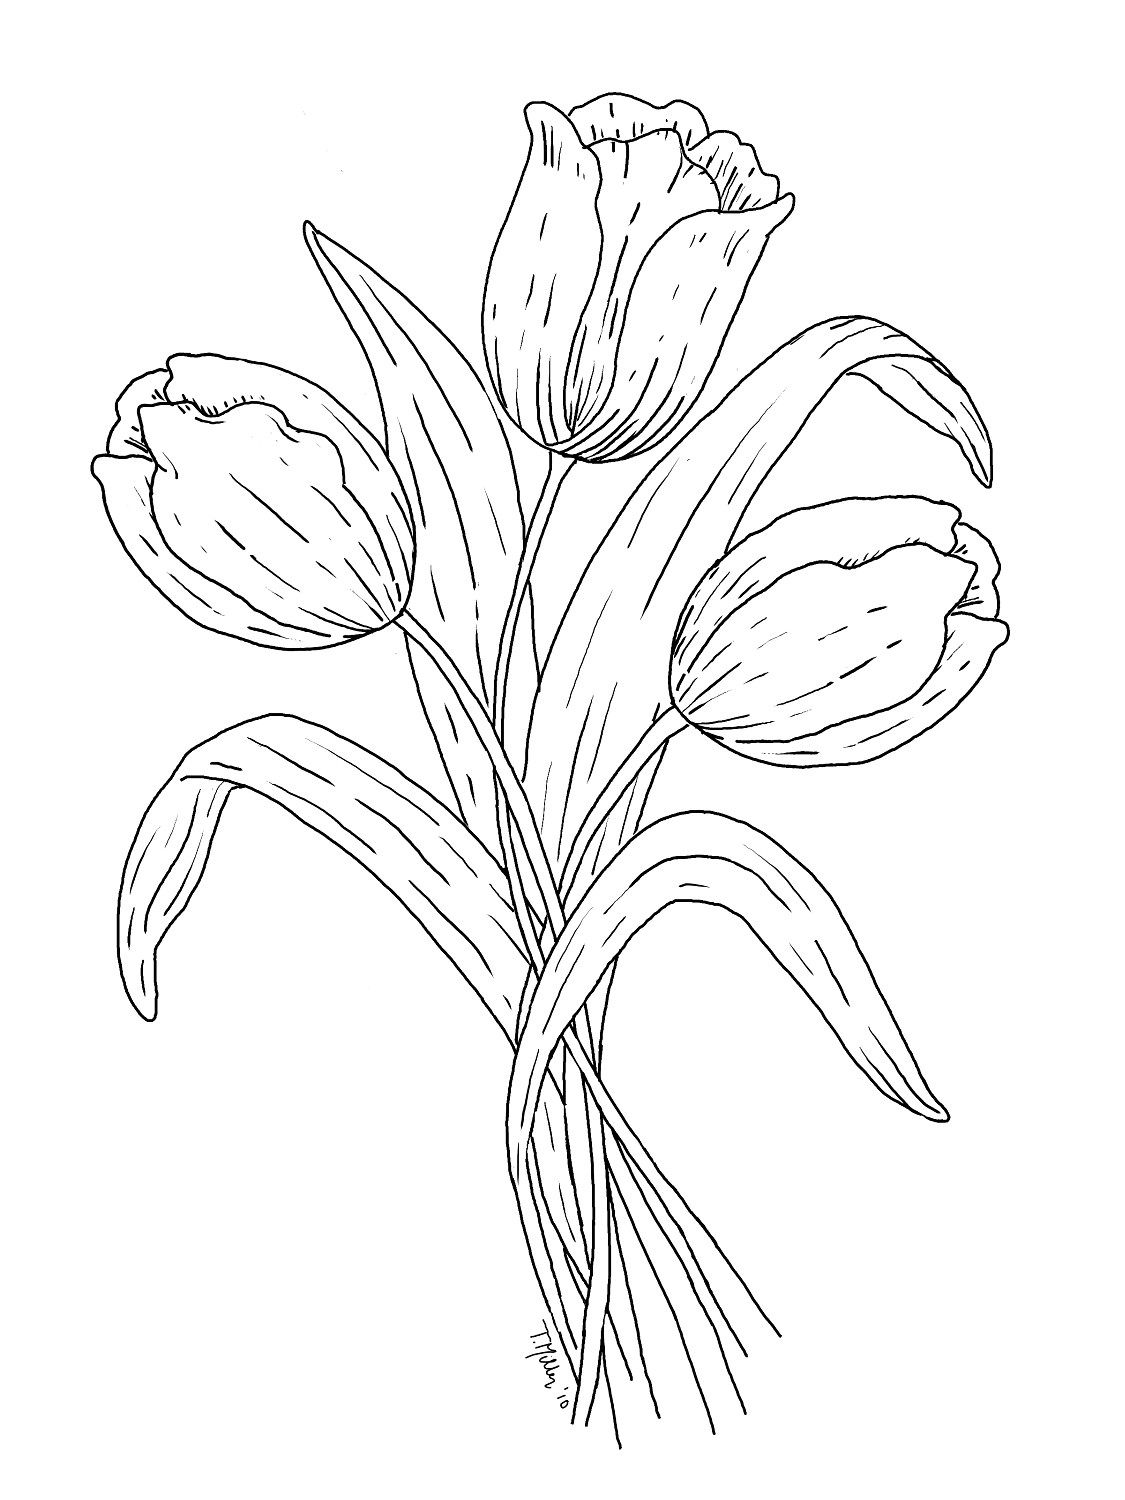 coloring tulip template tulip flower shape coloring page flowers templates coloring tulip template